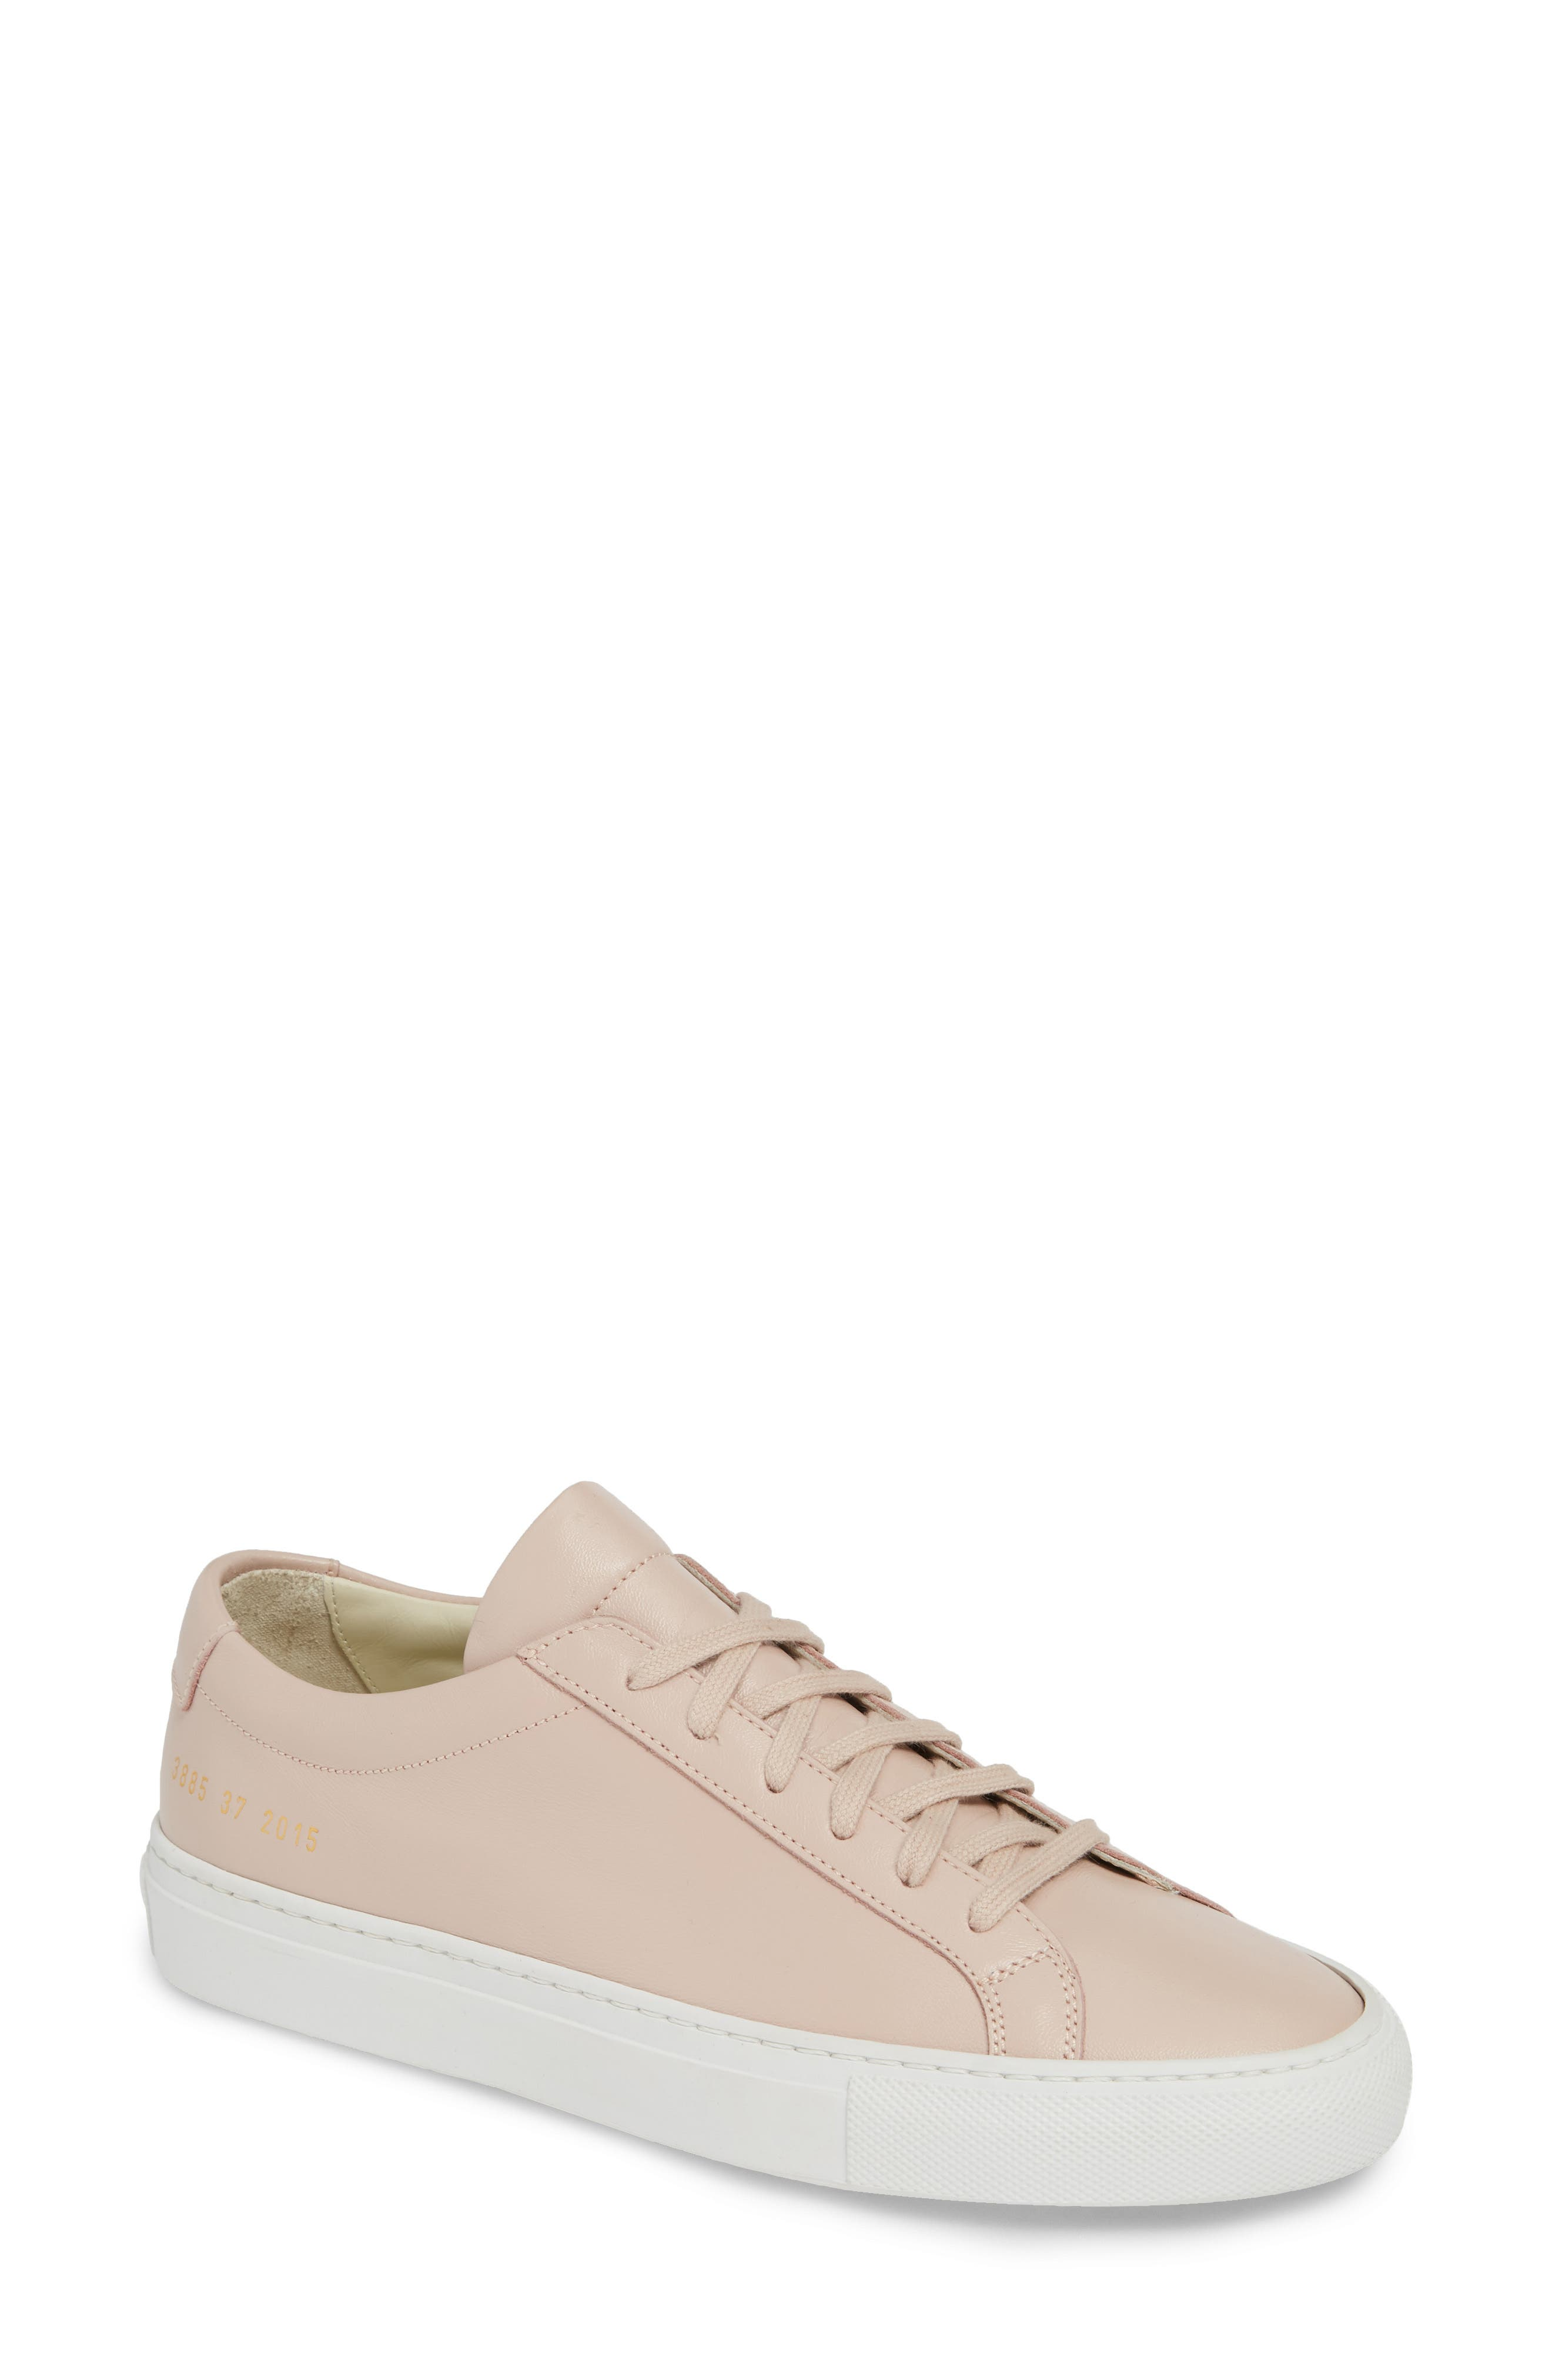 COMMON PROJECTS Original Achilles Sneaker, Main, color, BLUSH